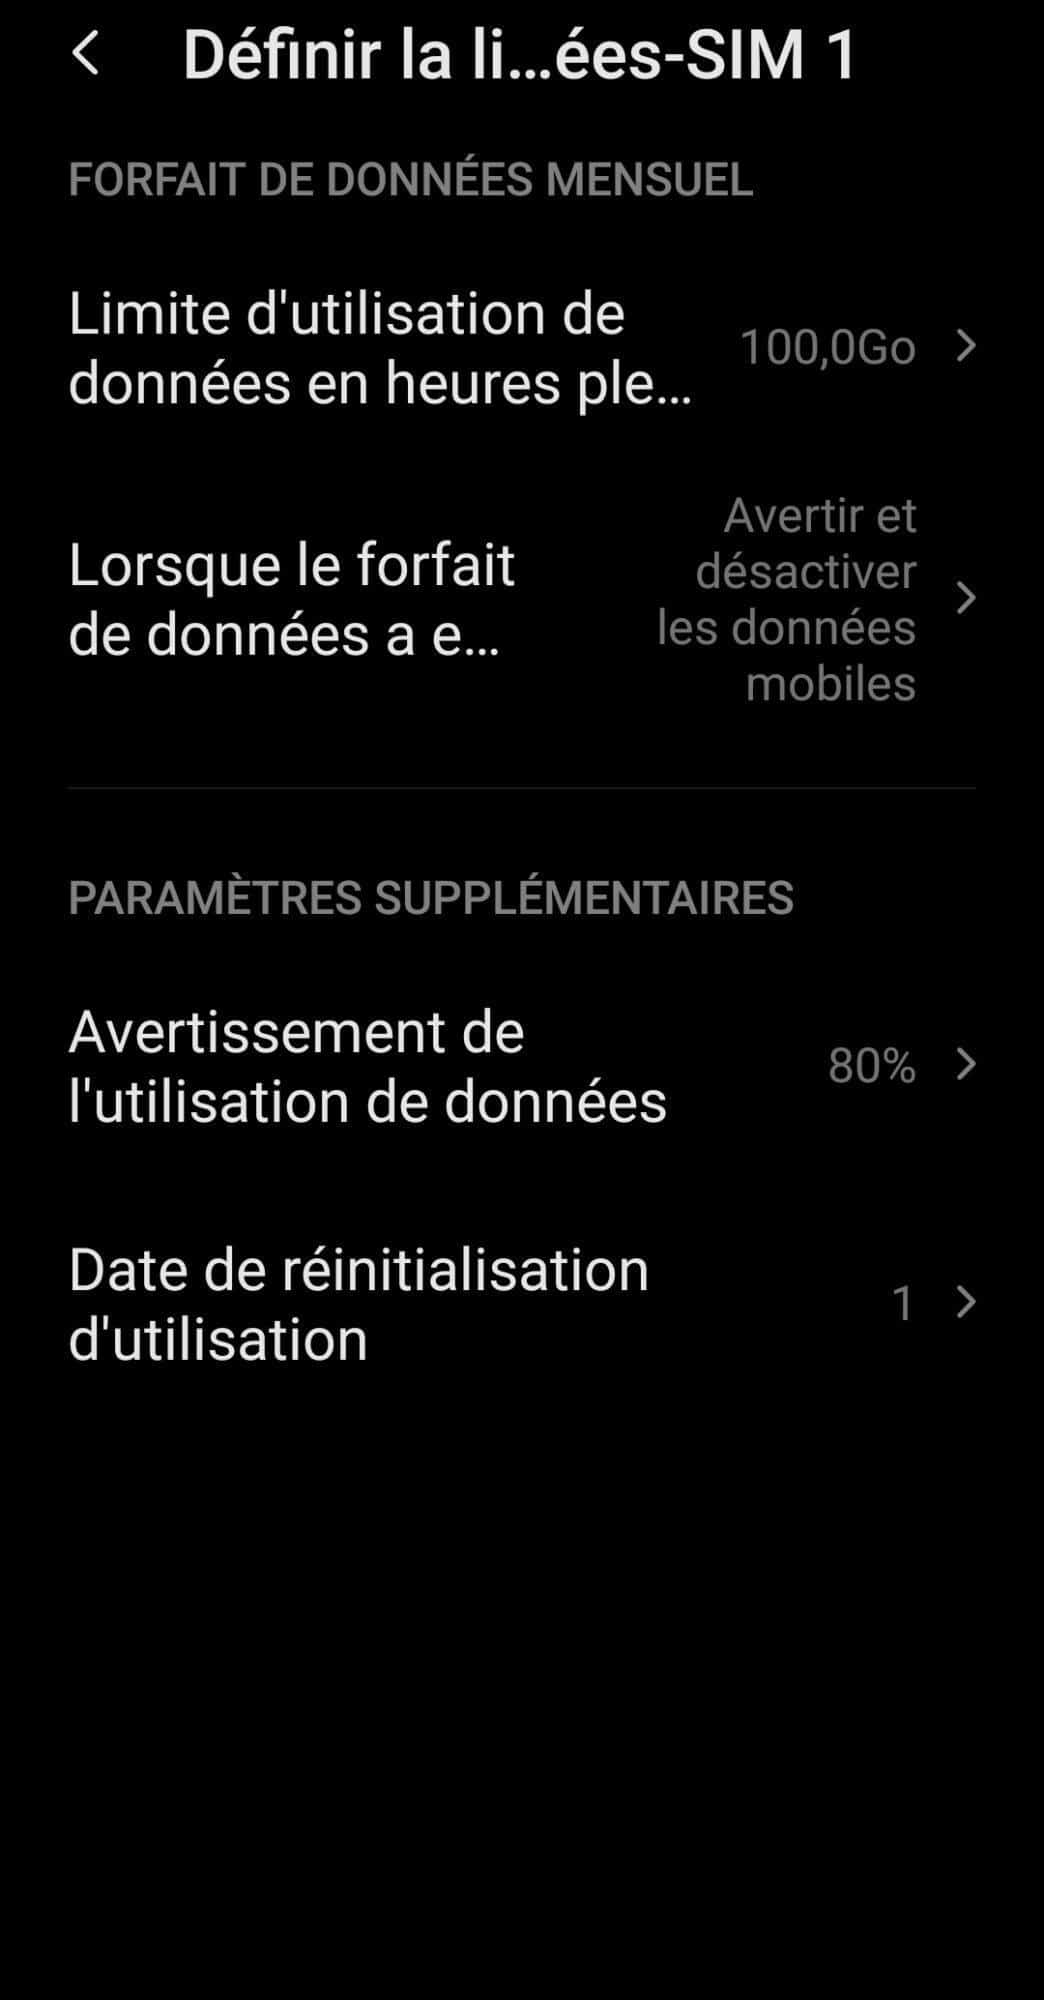 limiter-consommation-forfait-data-4G-smartphone-android